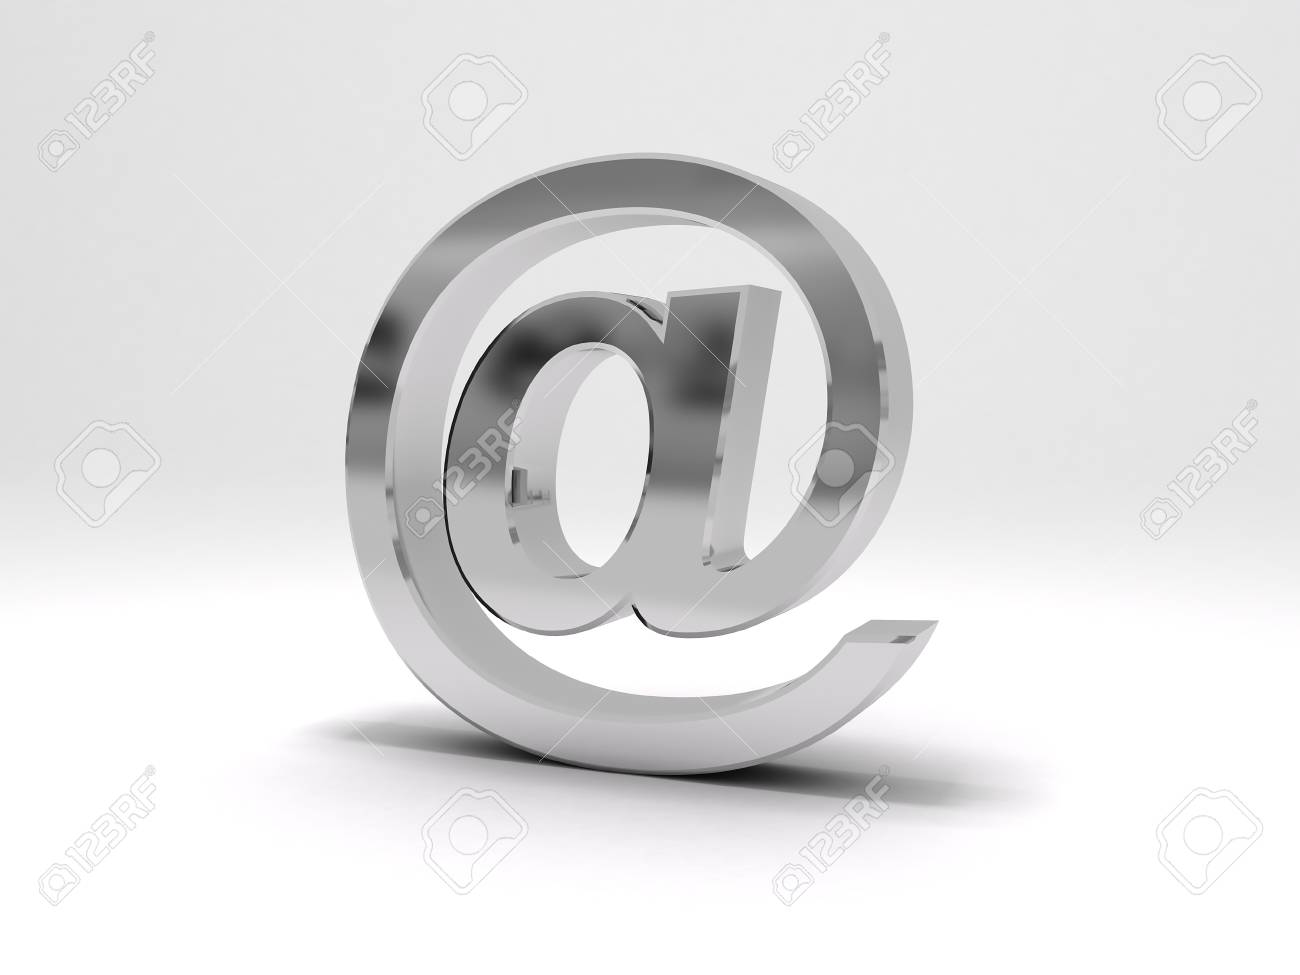 3D email symbol Stock Photo - 13276686